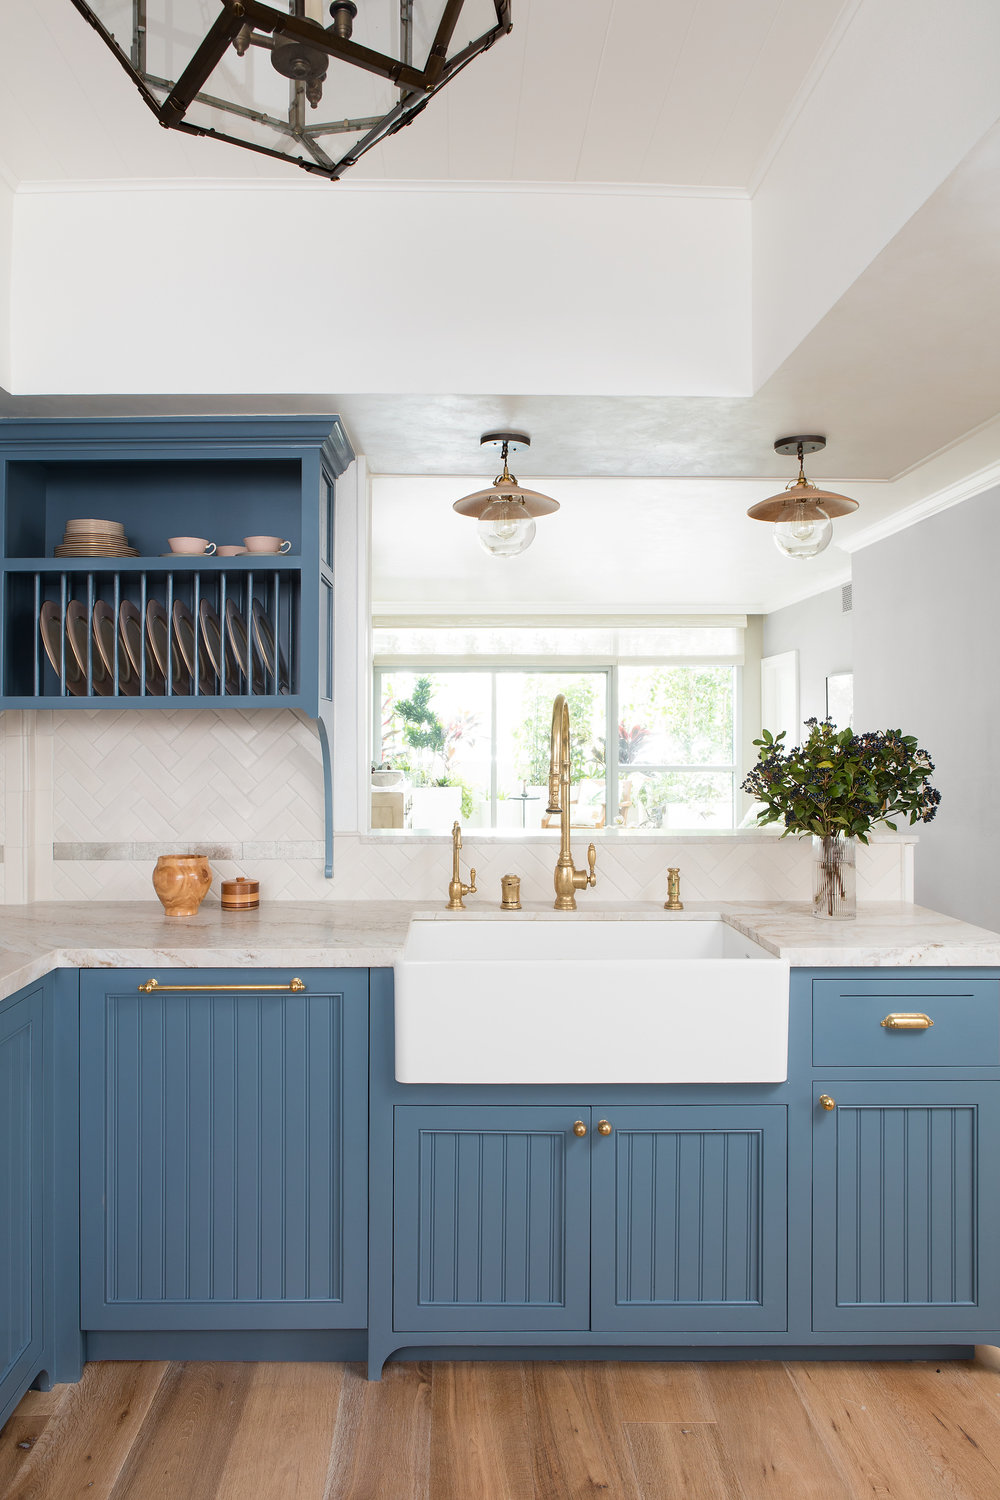 Hands Down: The 10 Best Blue Paint Colors for Kitchen Cabinets - Featuring our favorite kitchens.BY LYDIA GEISEL